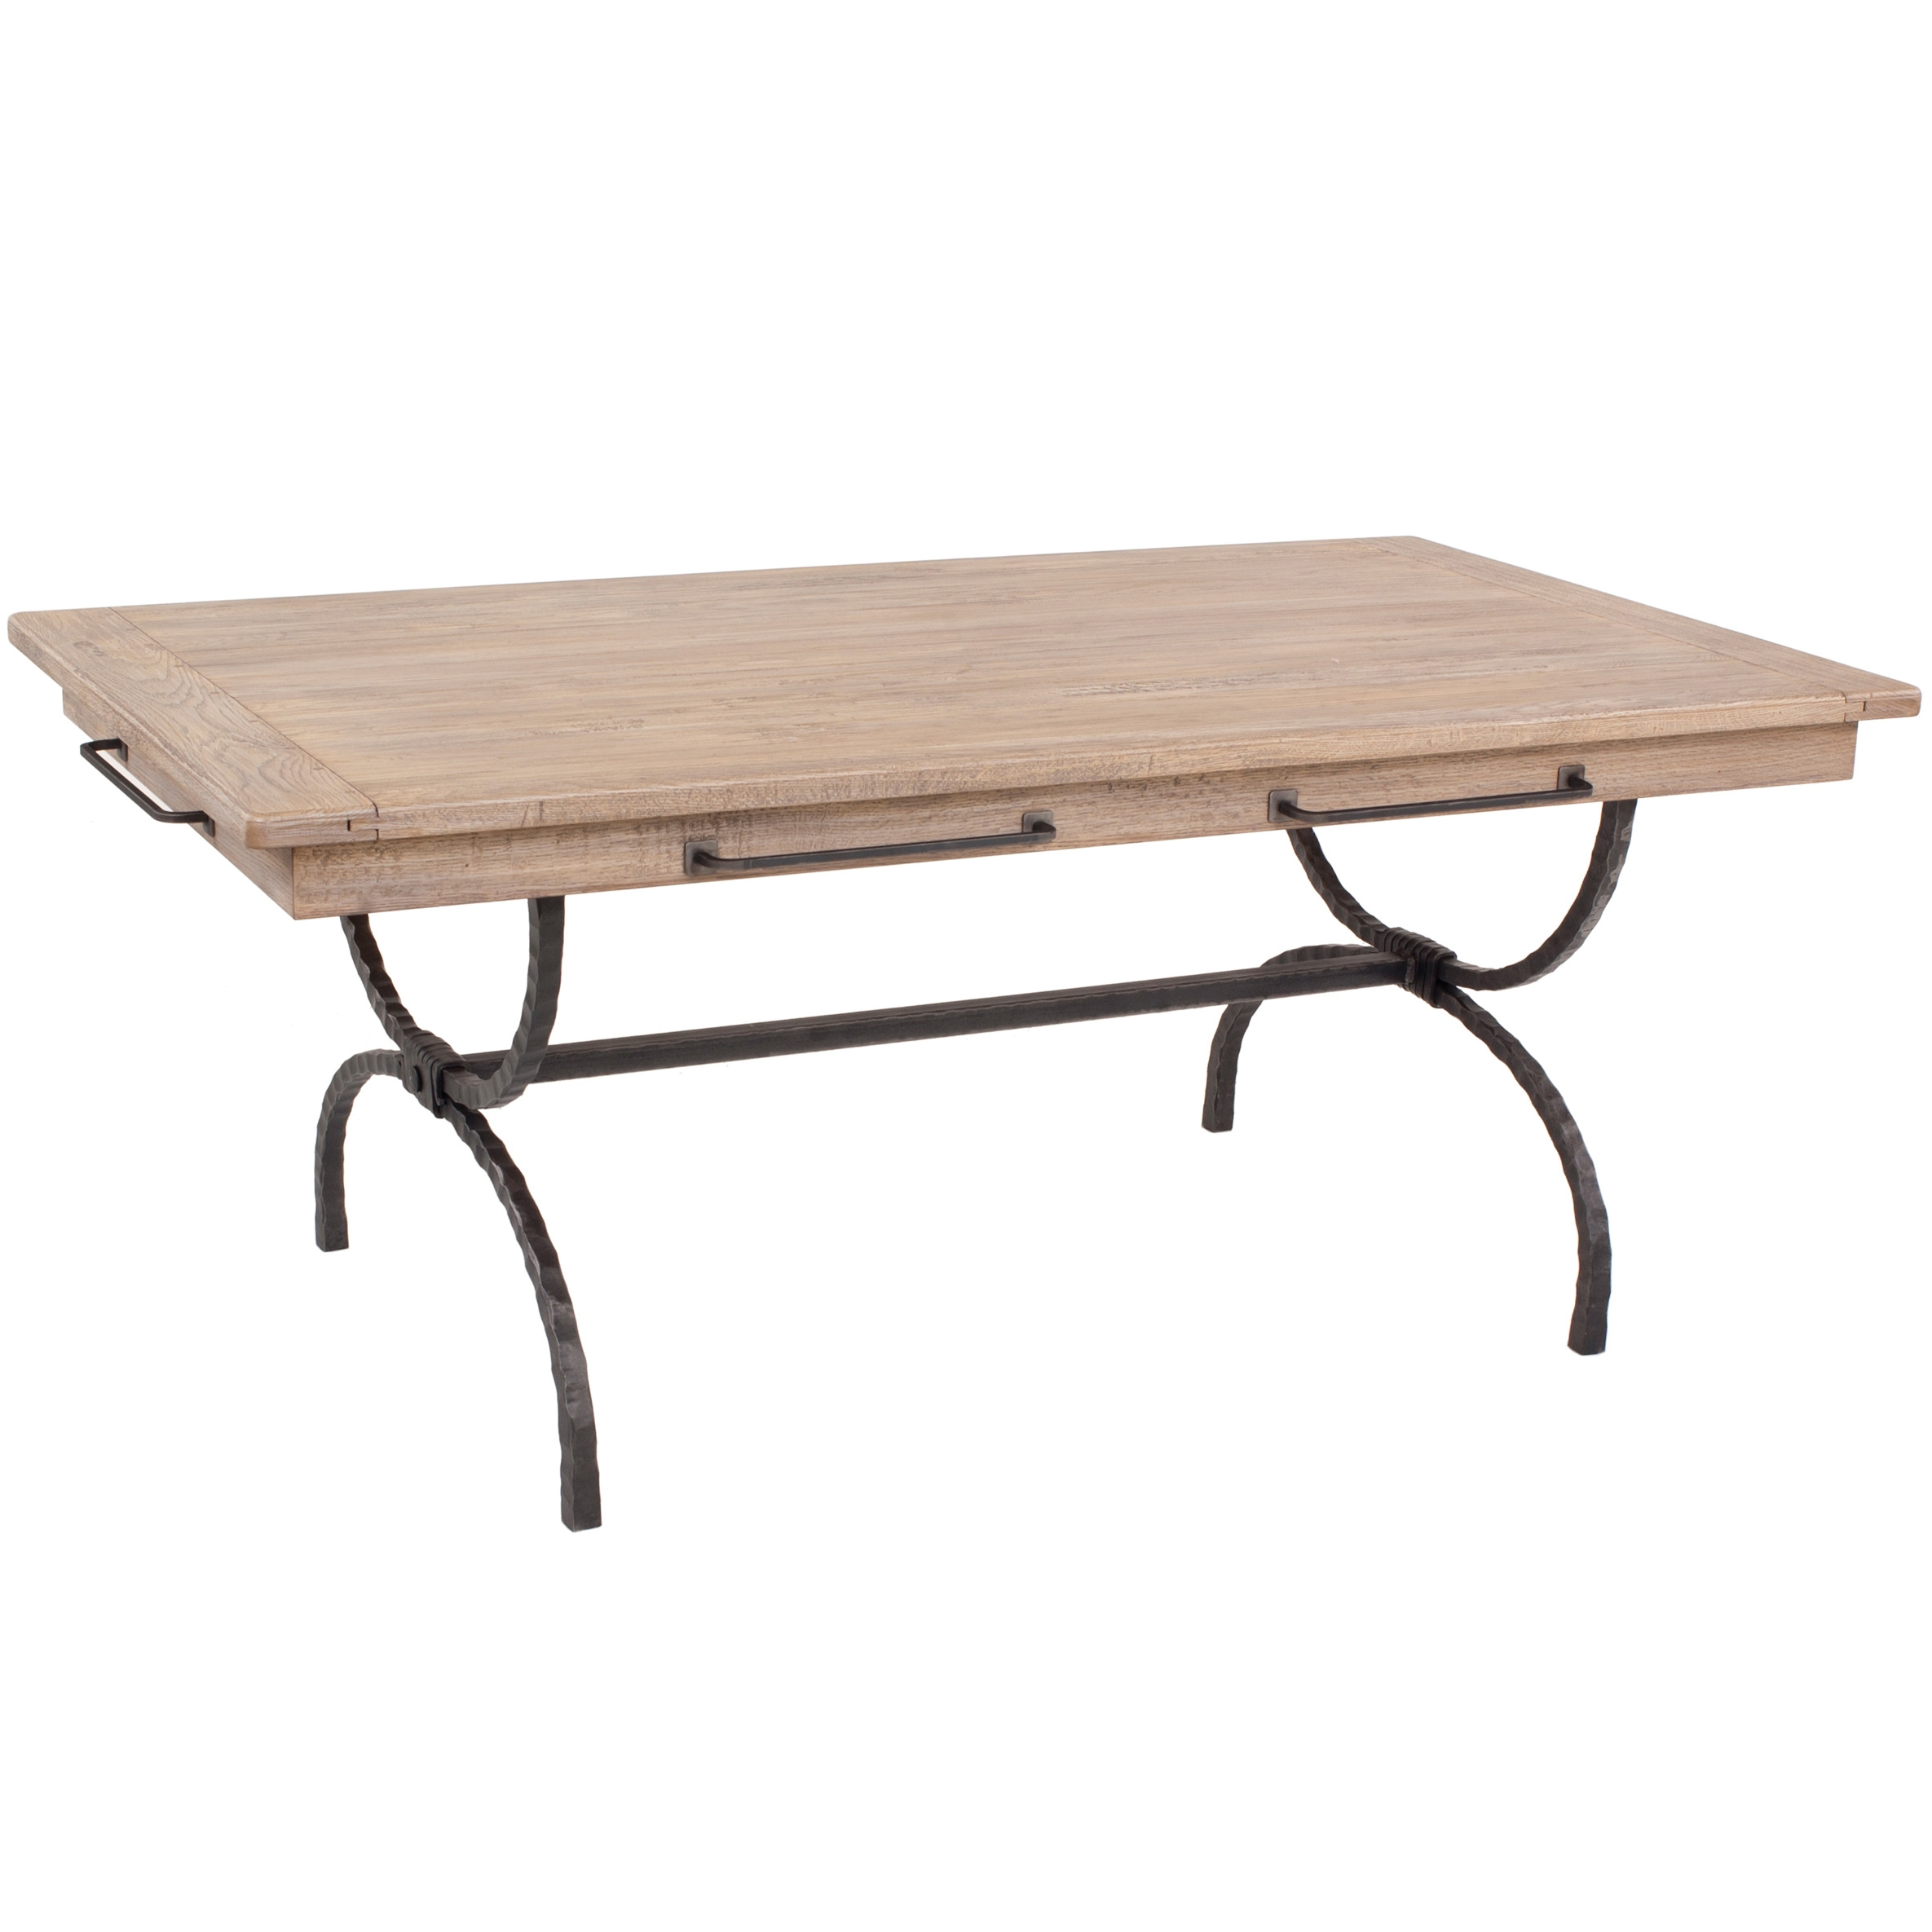 Marvelous Wrought Iron Dining Room Table Base Zef Jam Home Interior And Landscaping Spoatsignezvosmurscom